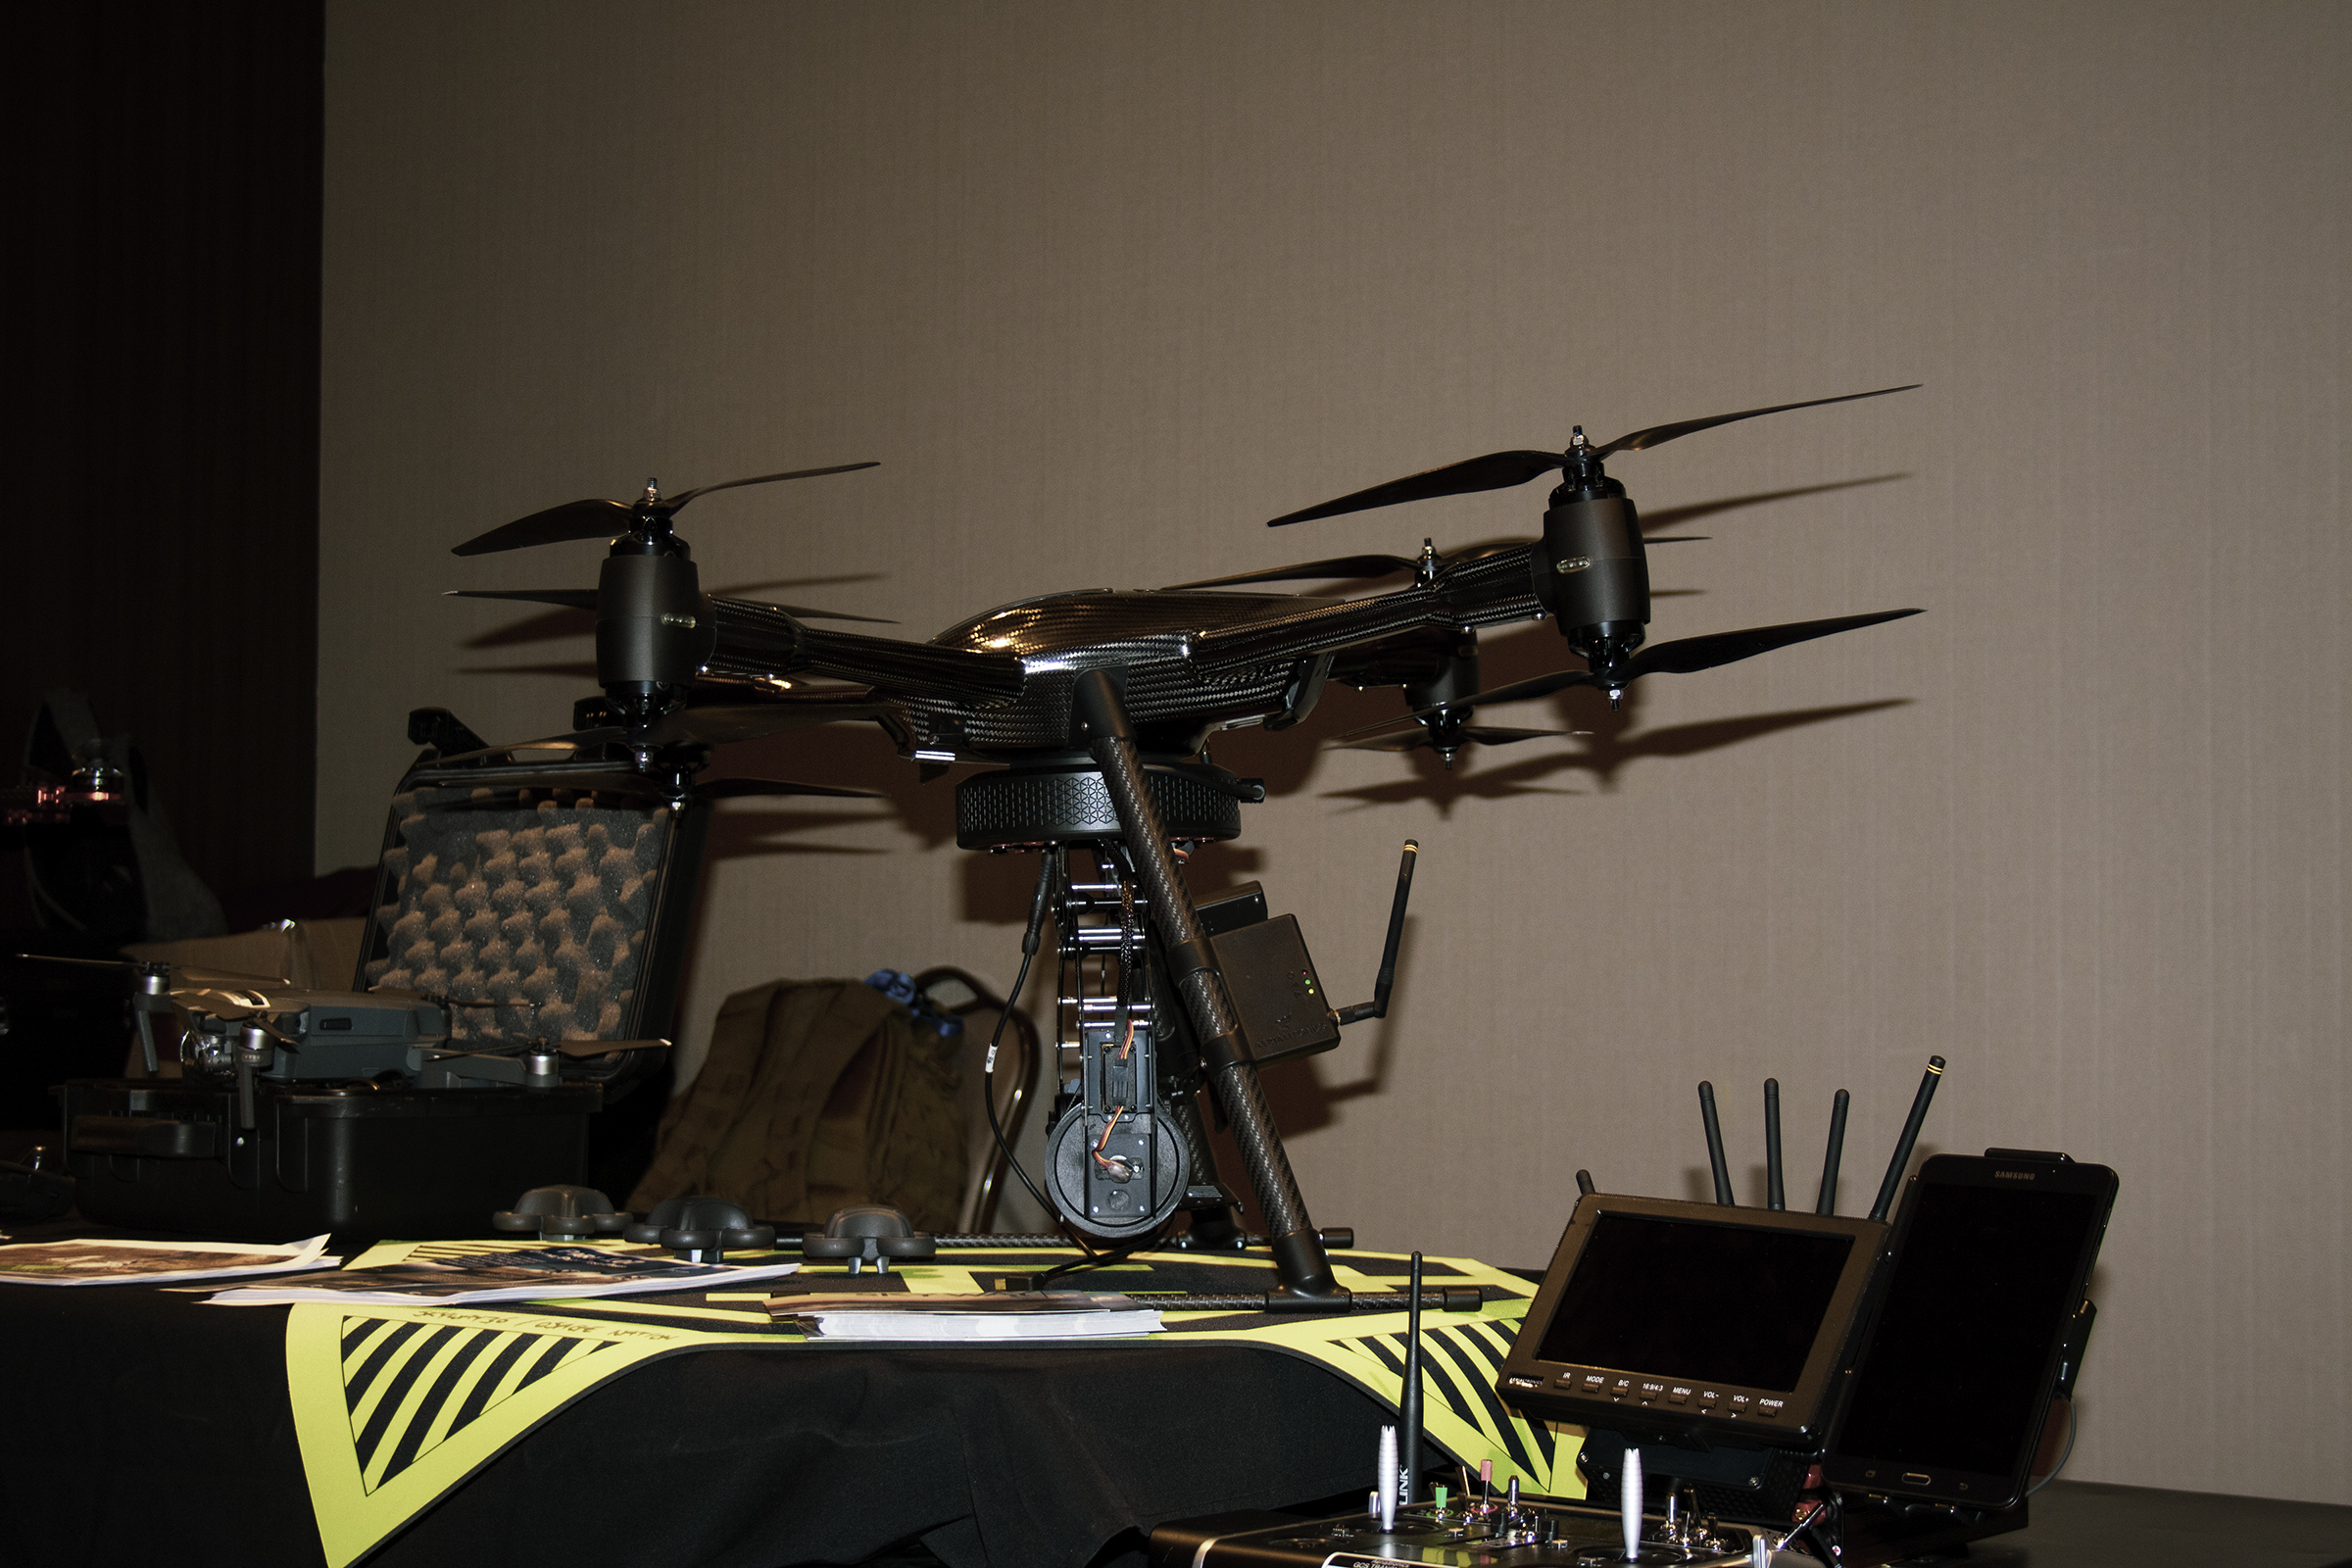 drone conference picture showing Osage Nation's Skyway36 project drones